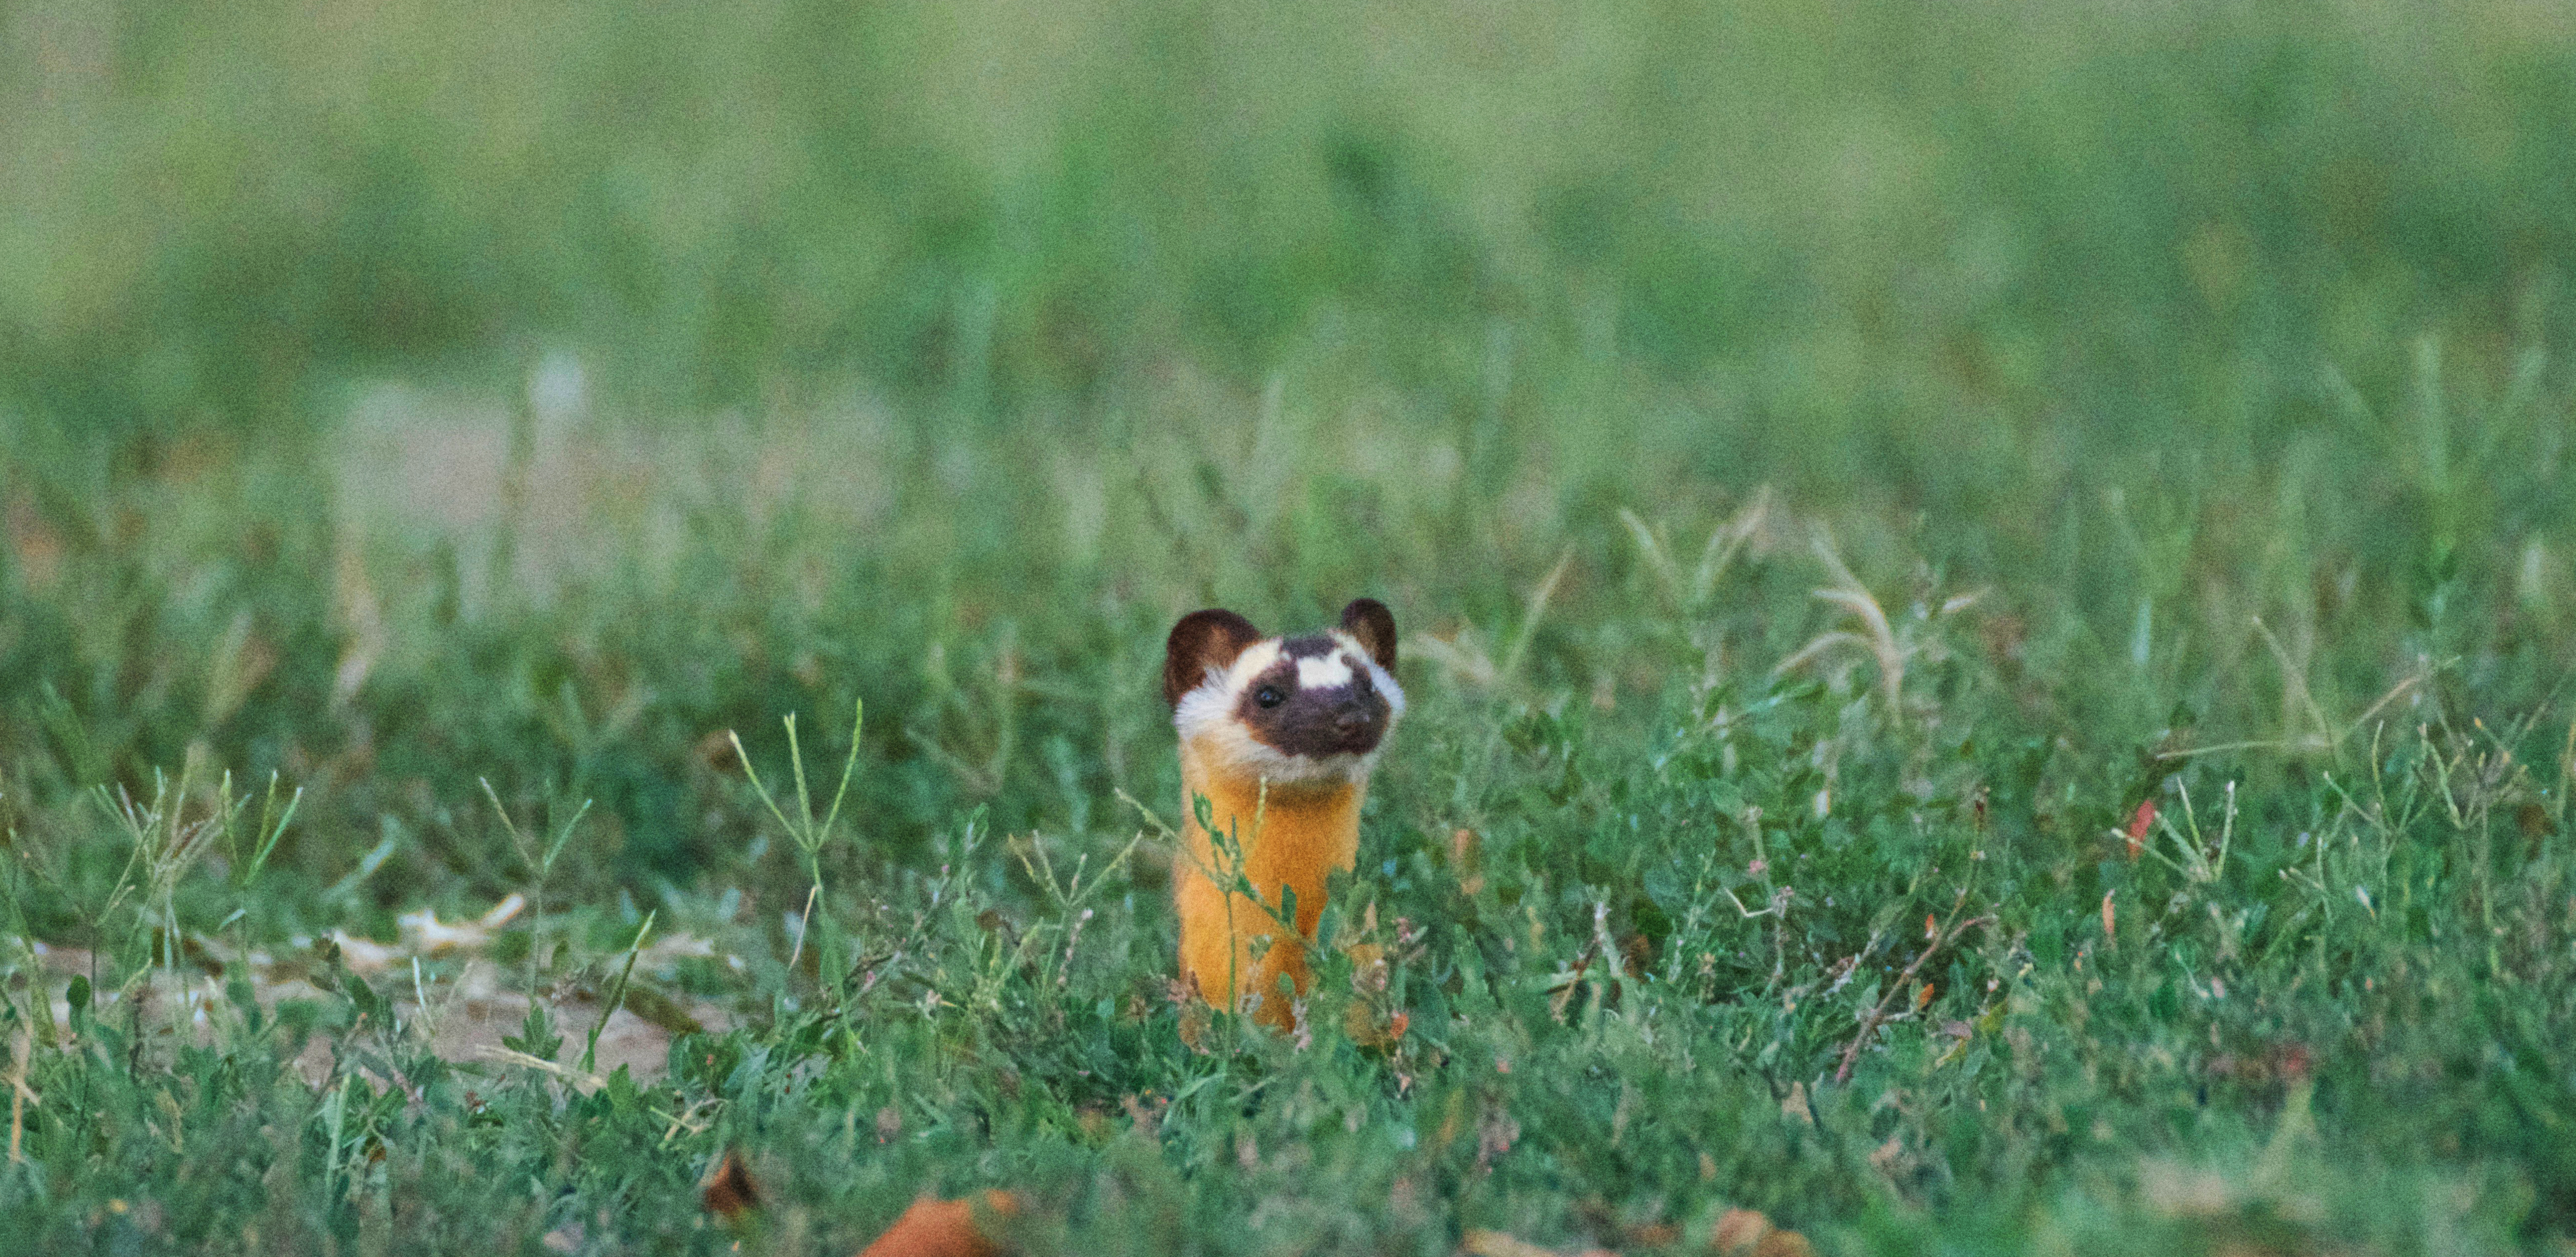 Long-tailed weasel popping its head up out of its hole